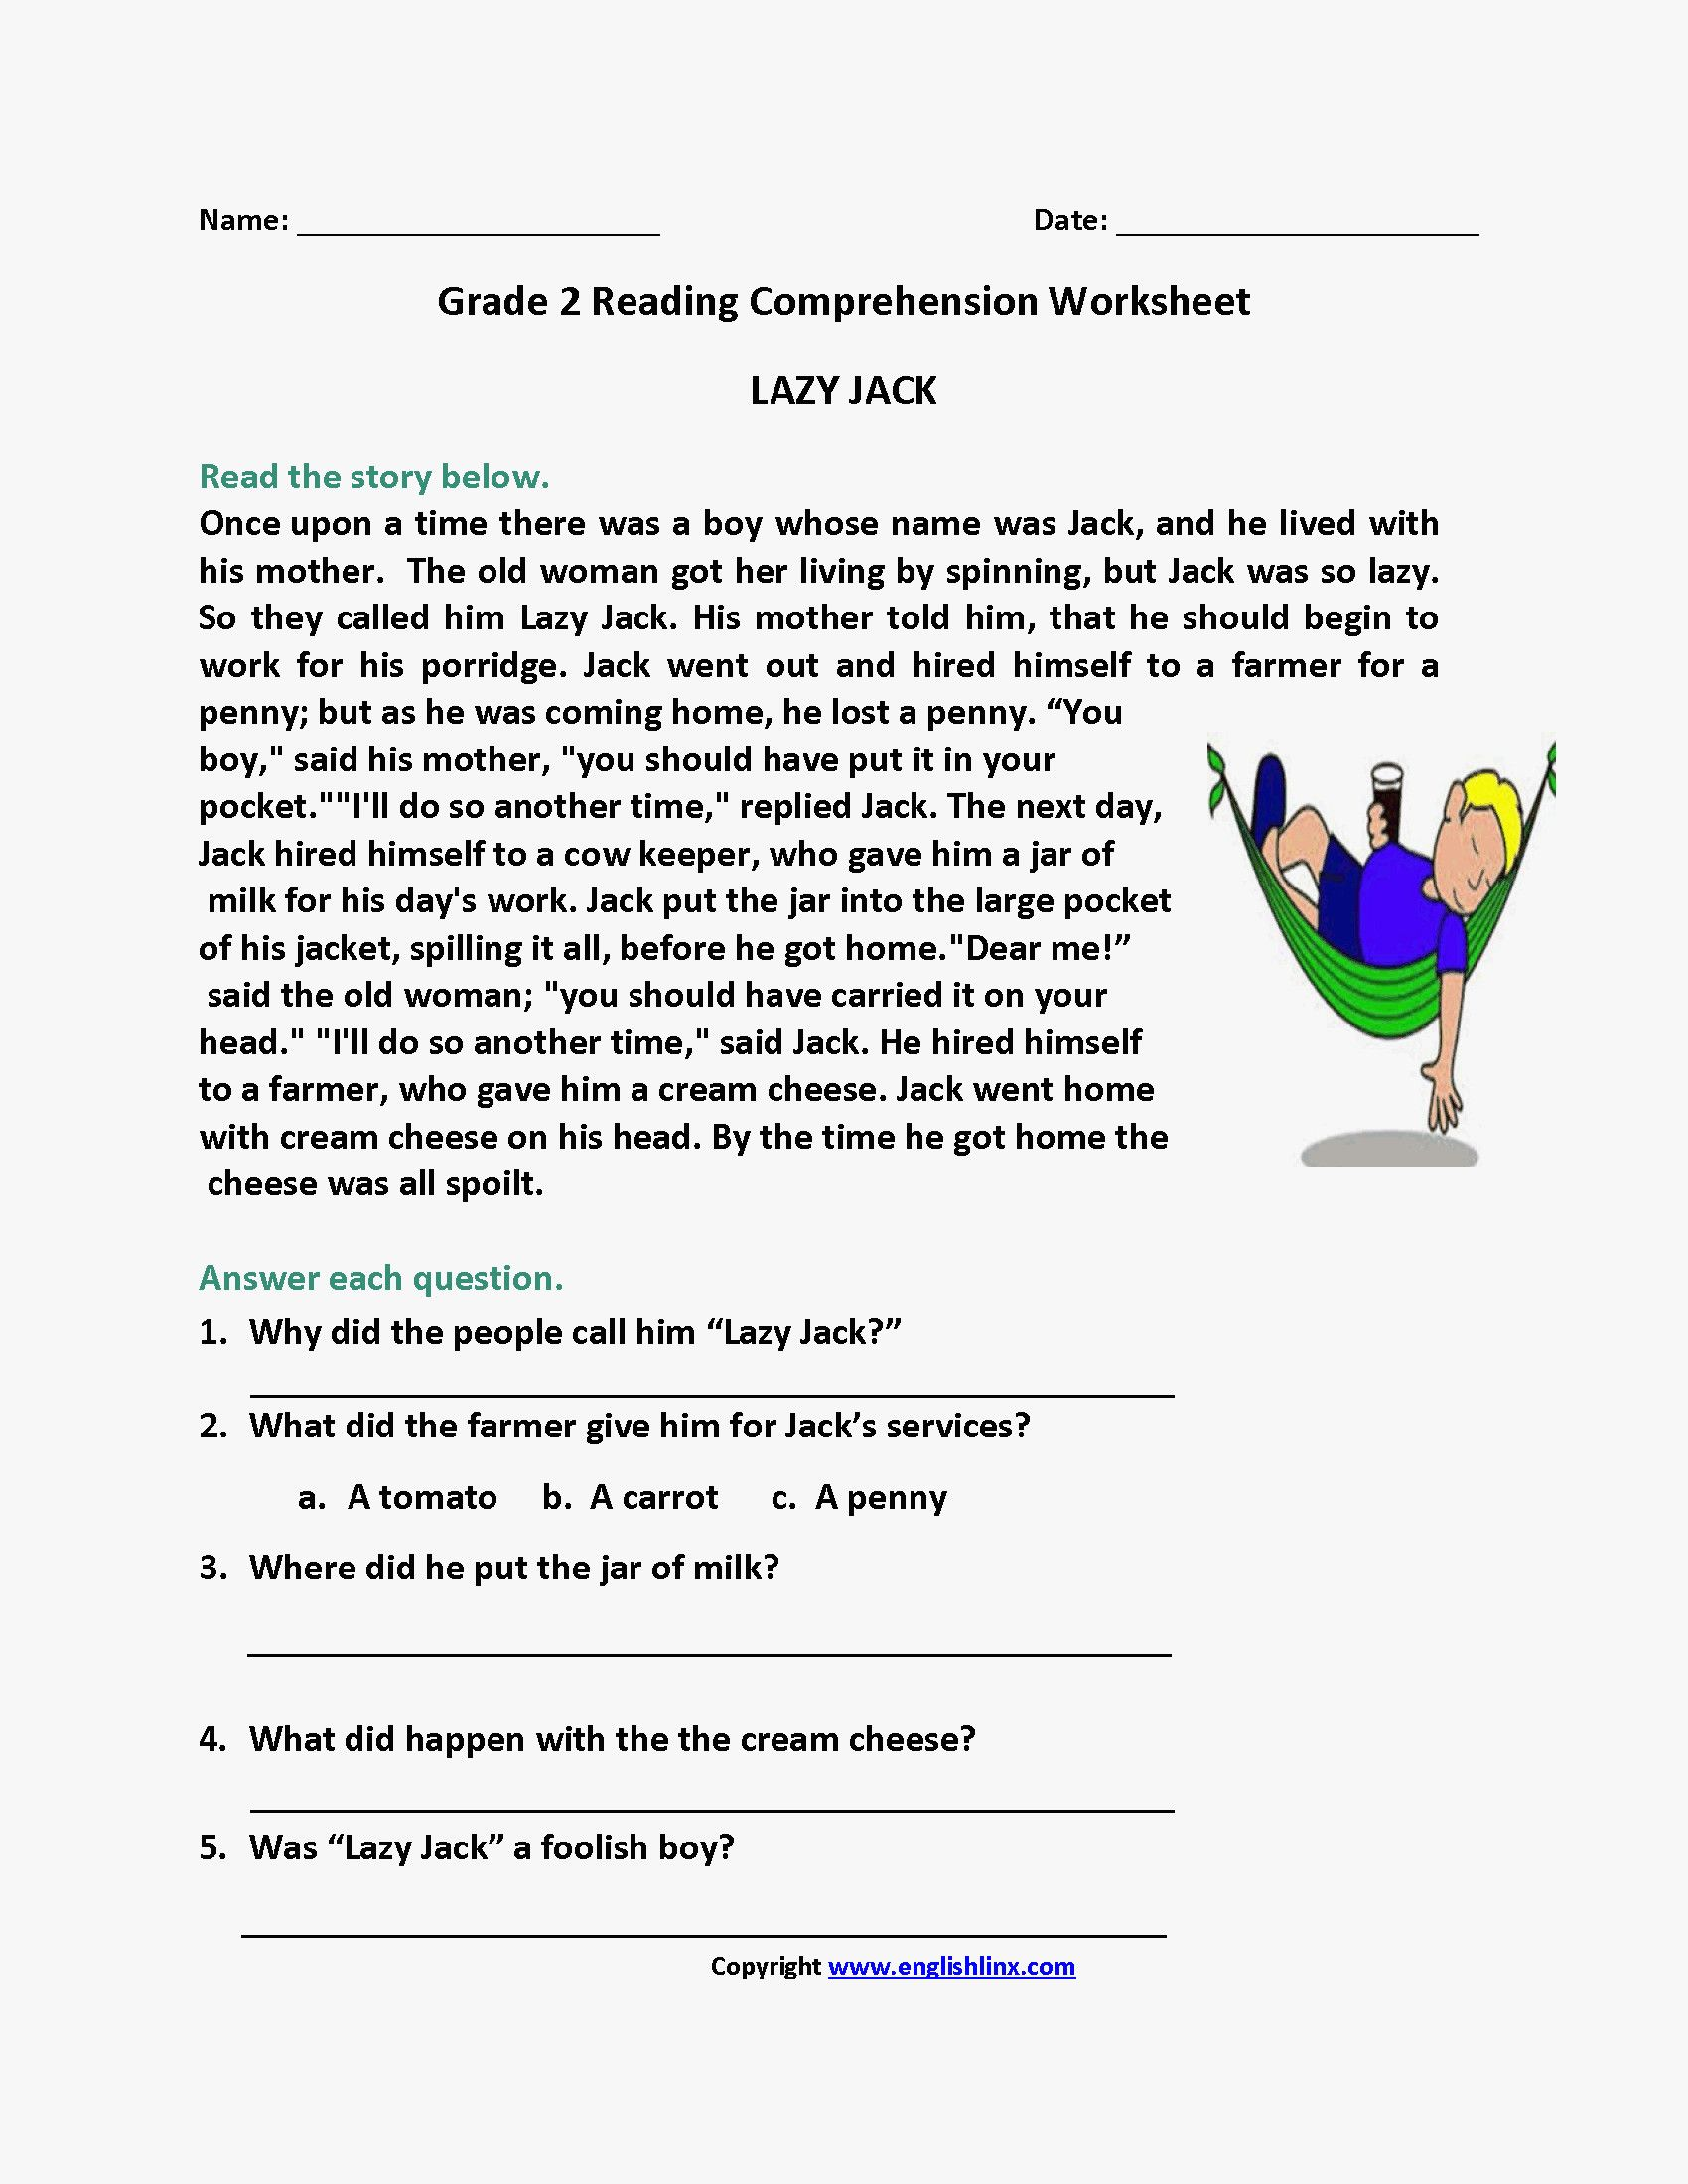 10 Reading Comprehension Worksheets for 2nd Grade - Free Templates [ 2200 x 1700 Pixel ]